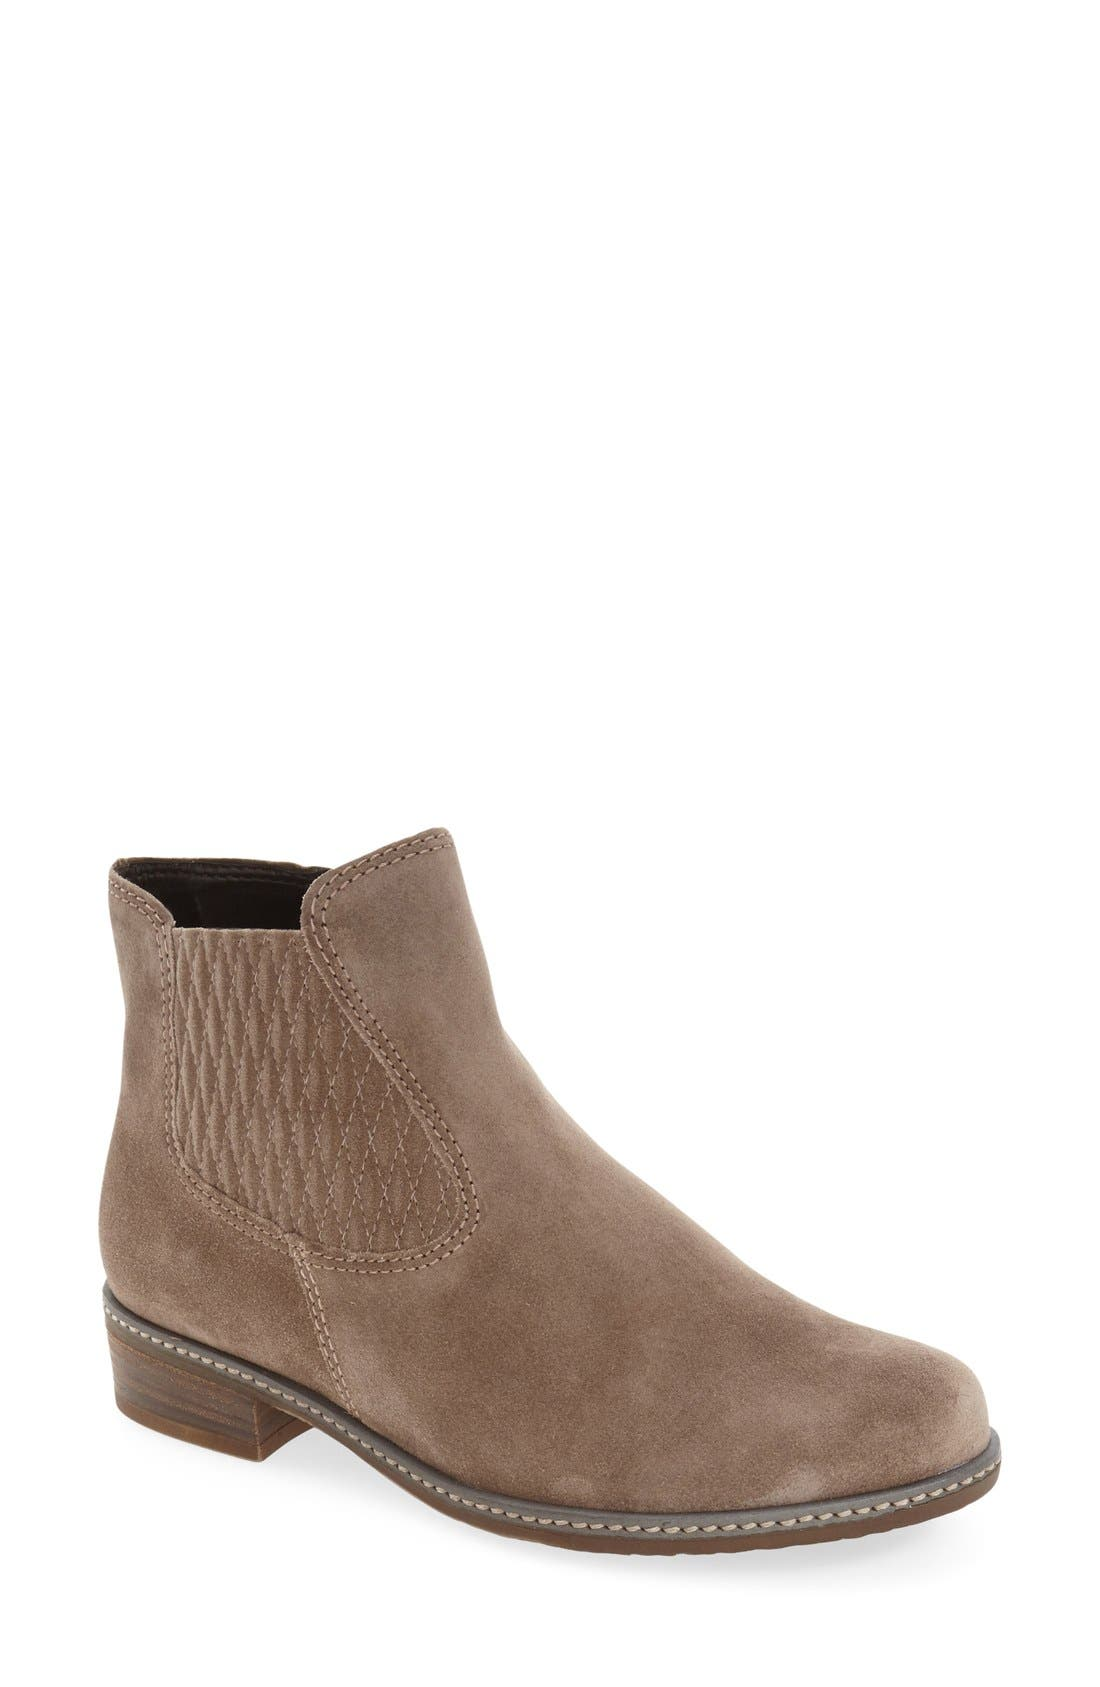 Chelsea Boot,                         Main,                         color, GREY LEATHER